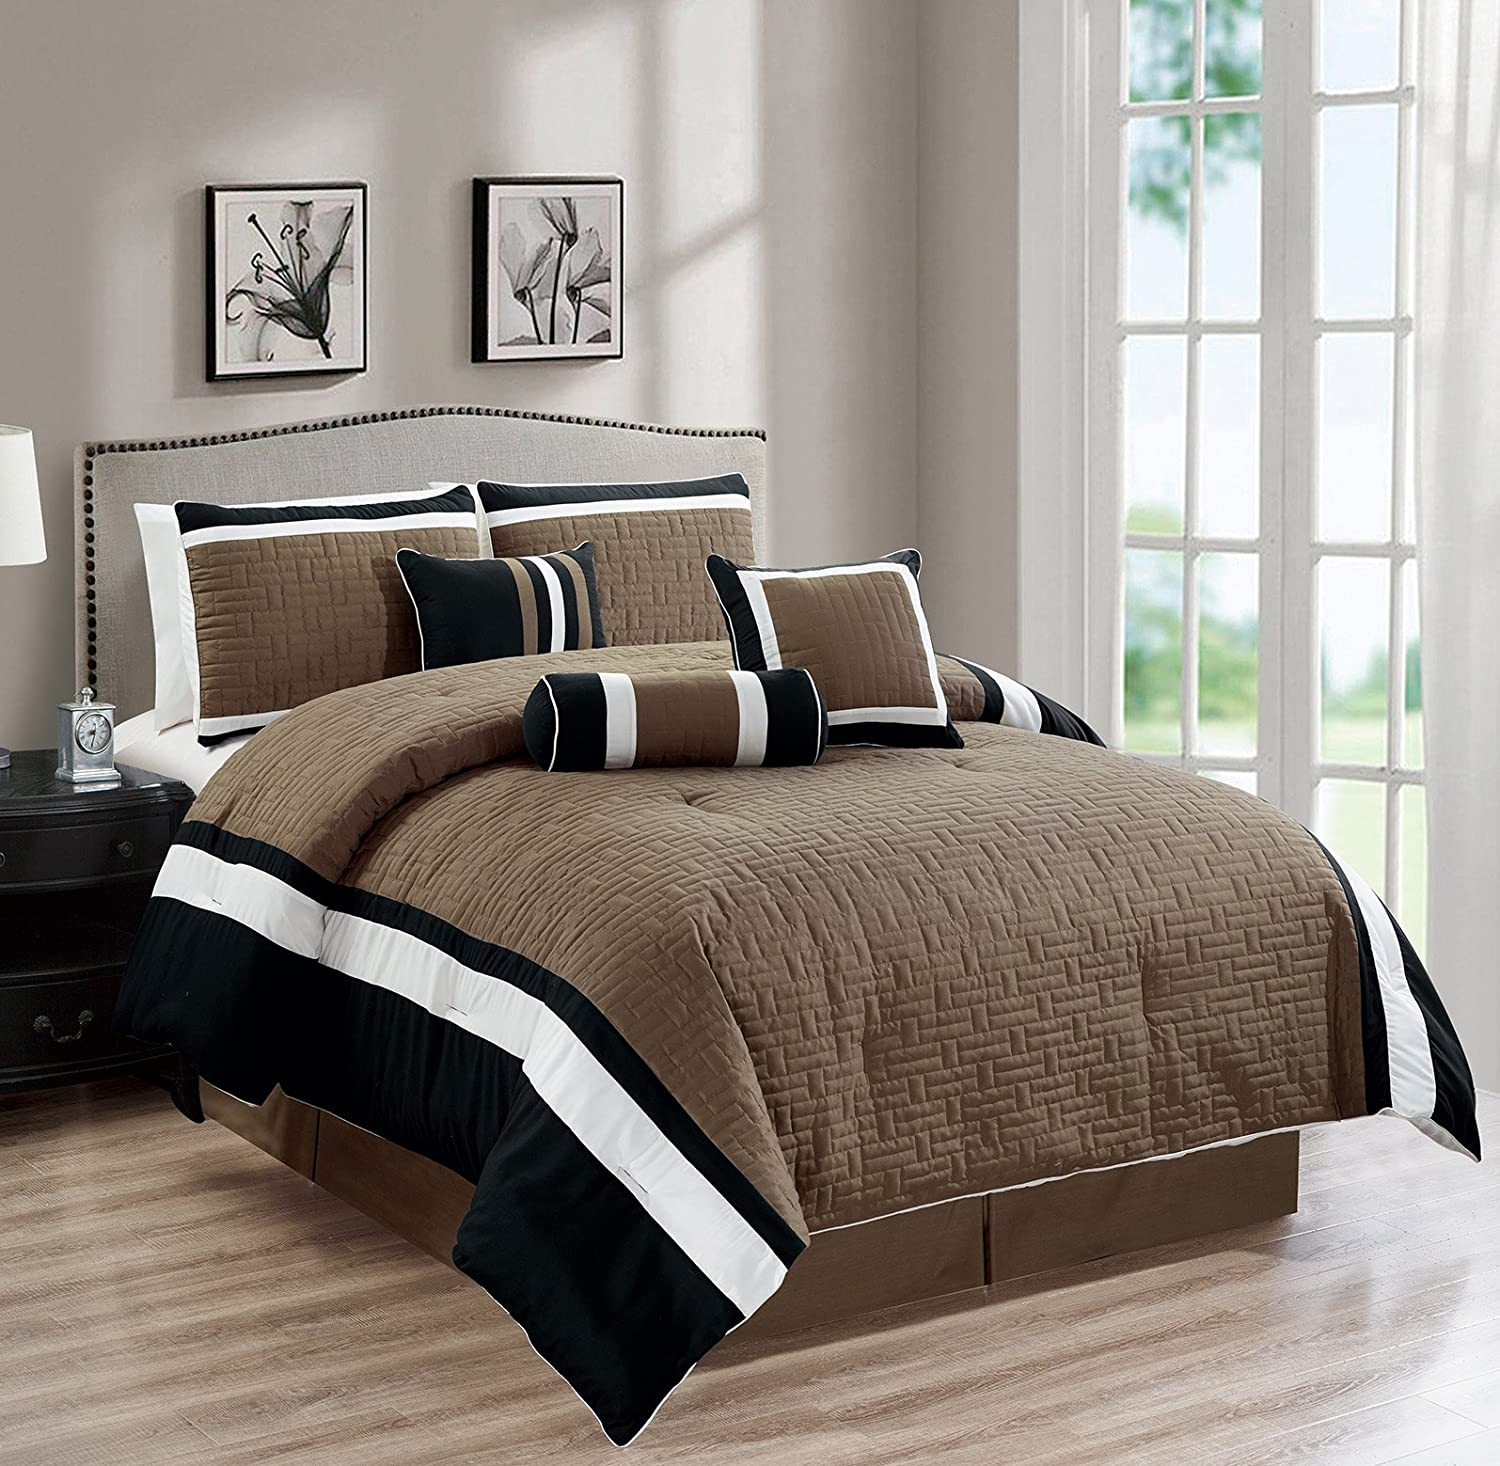 All American Collection New 7 Piece Embroidered Over-Sized Comforter Set (King, Dark Taupe Black)